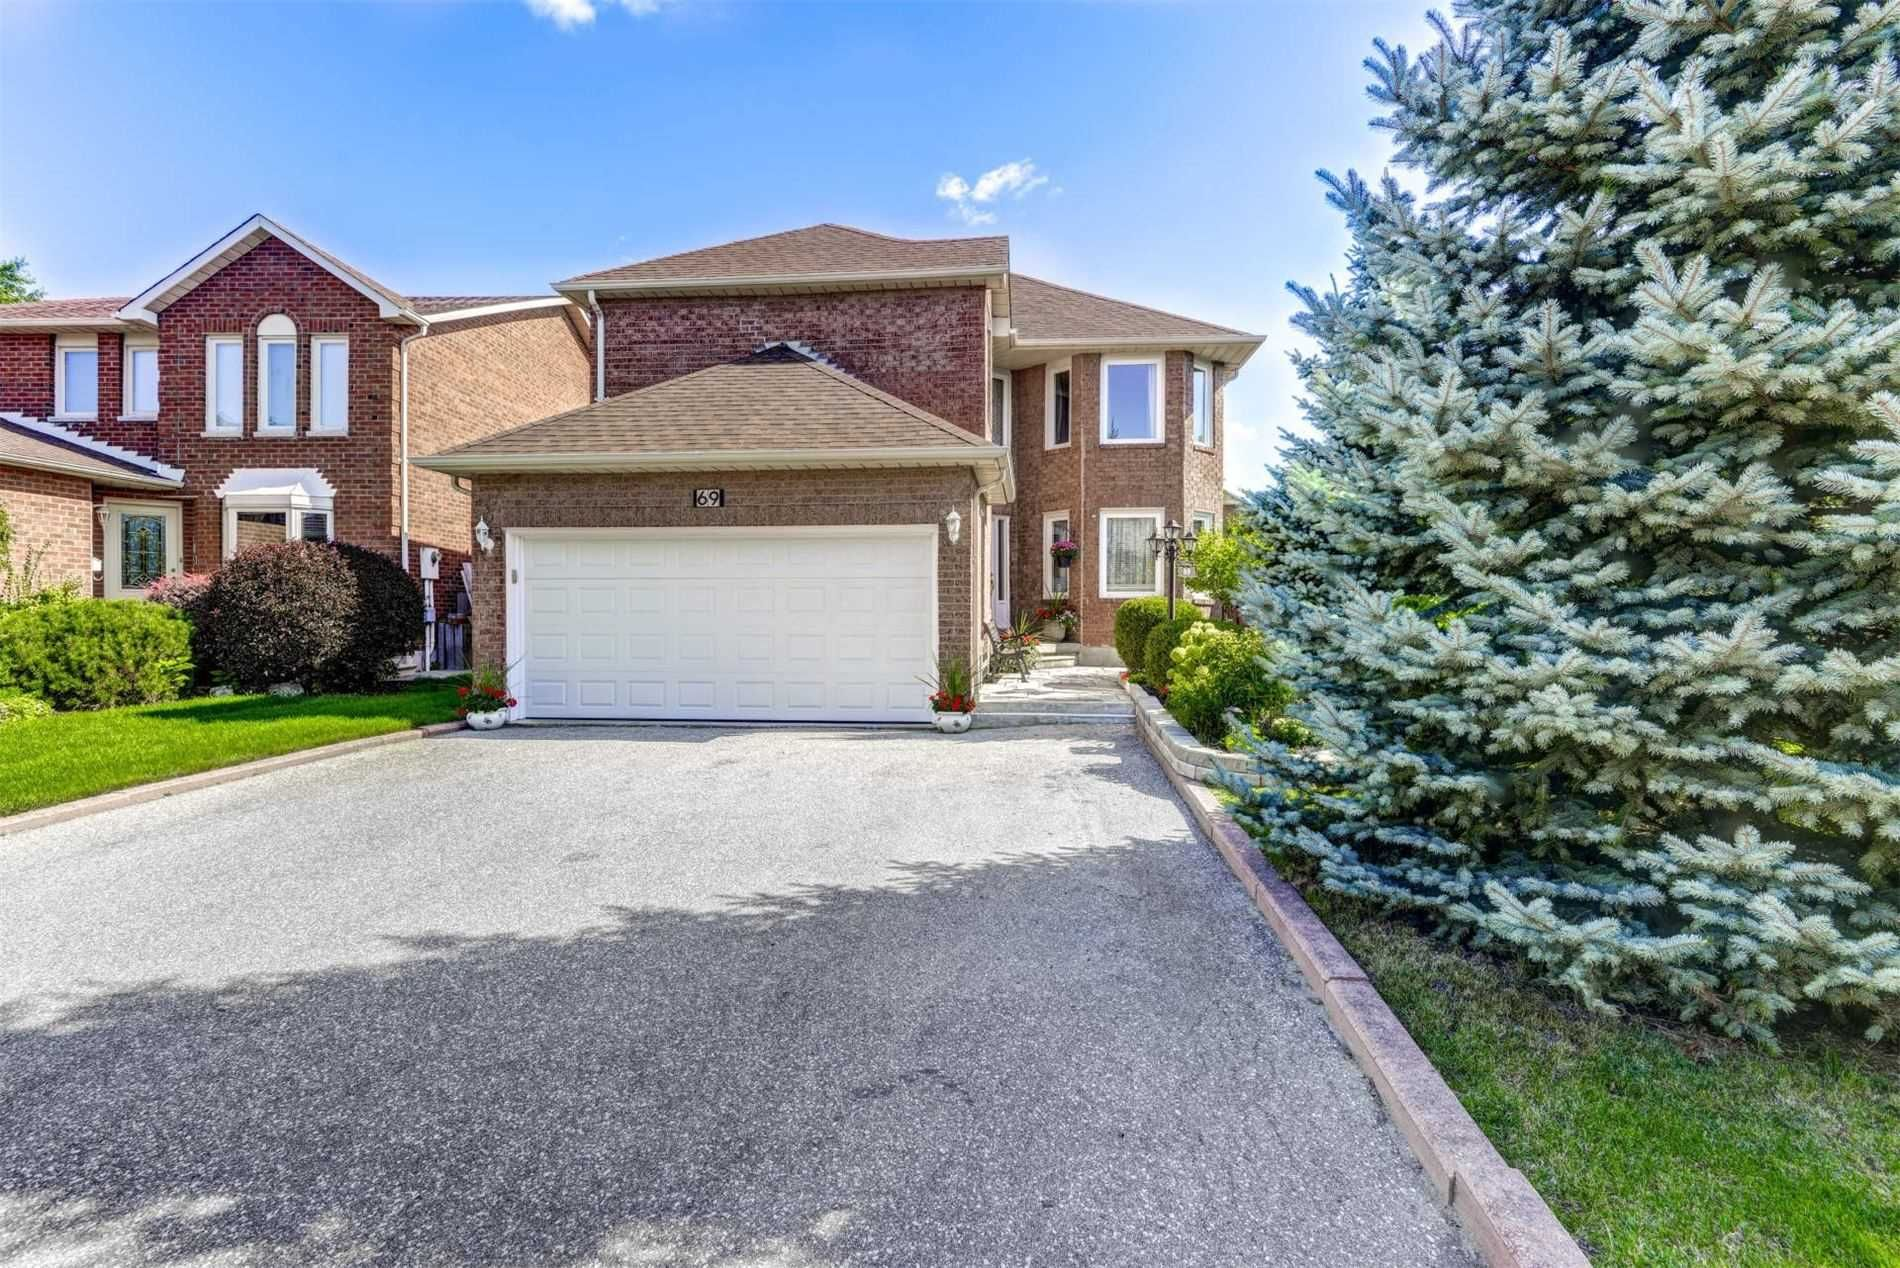 69 Lord Simcoe Drive for sale